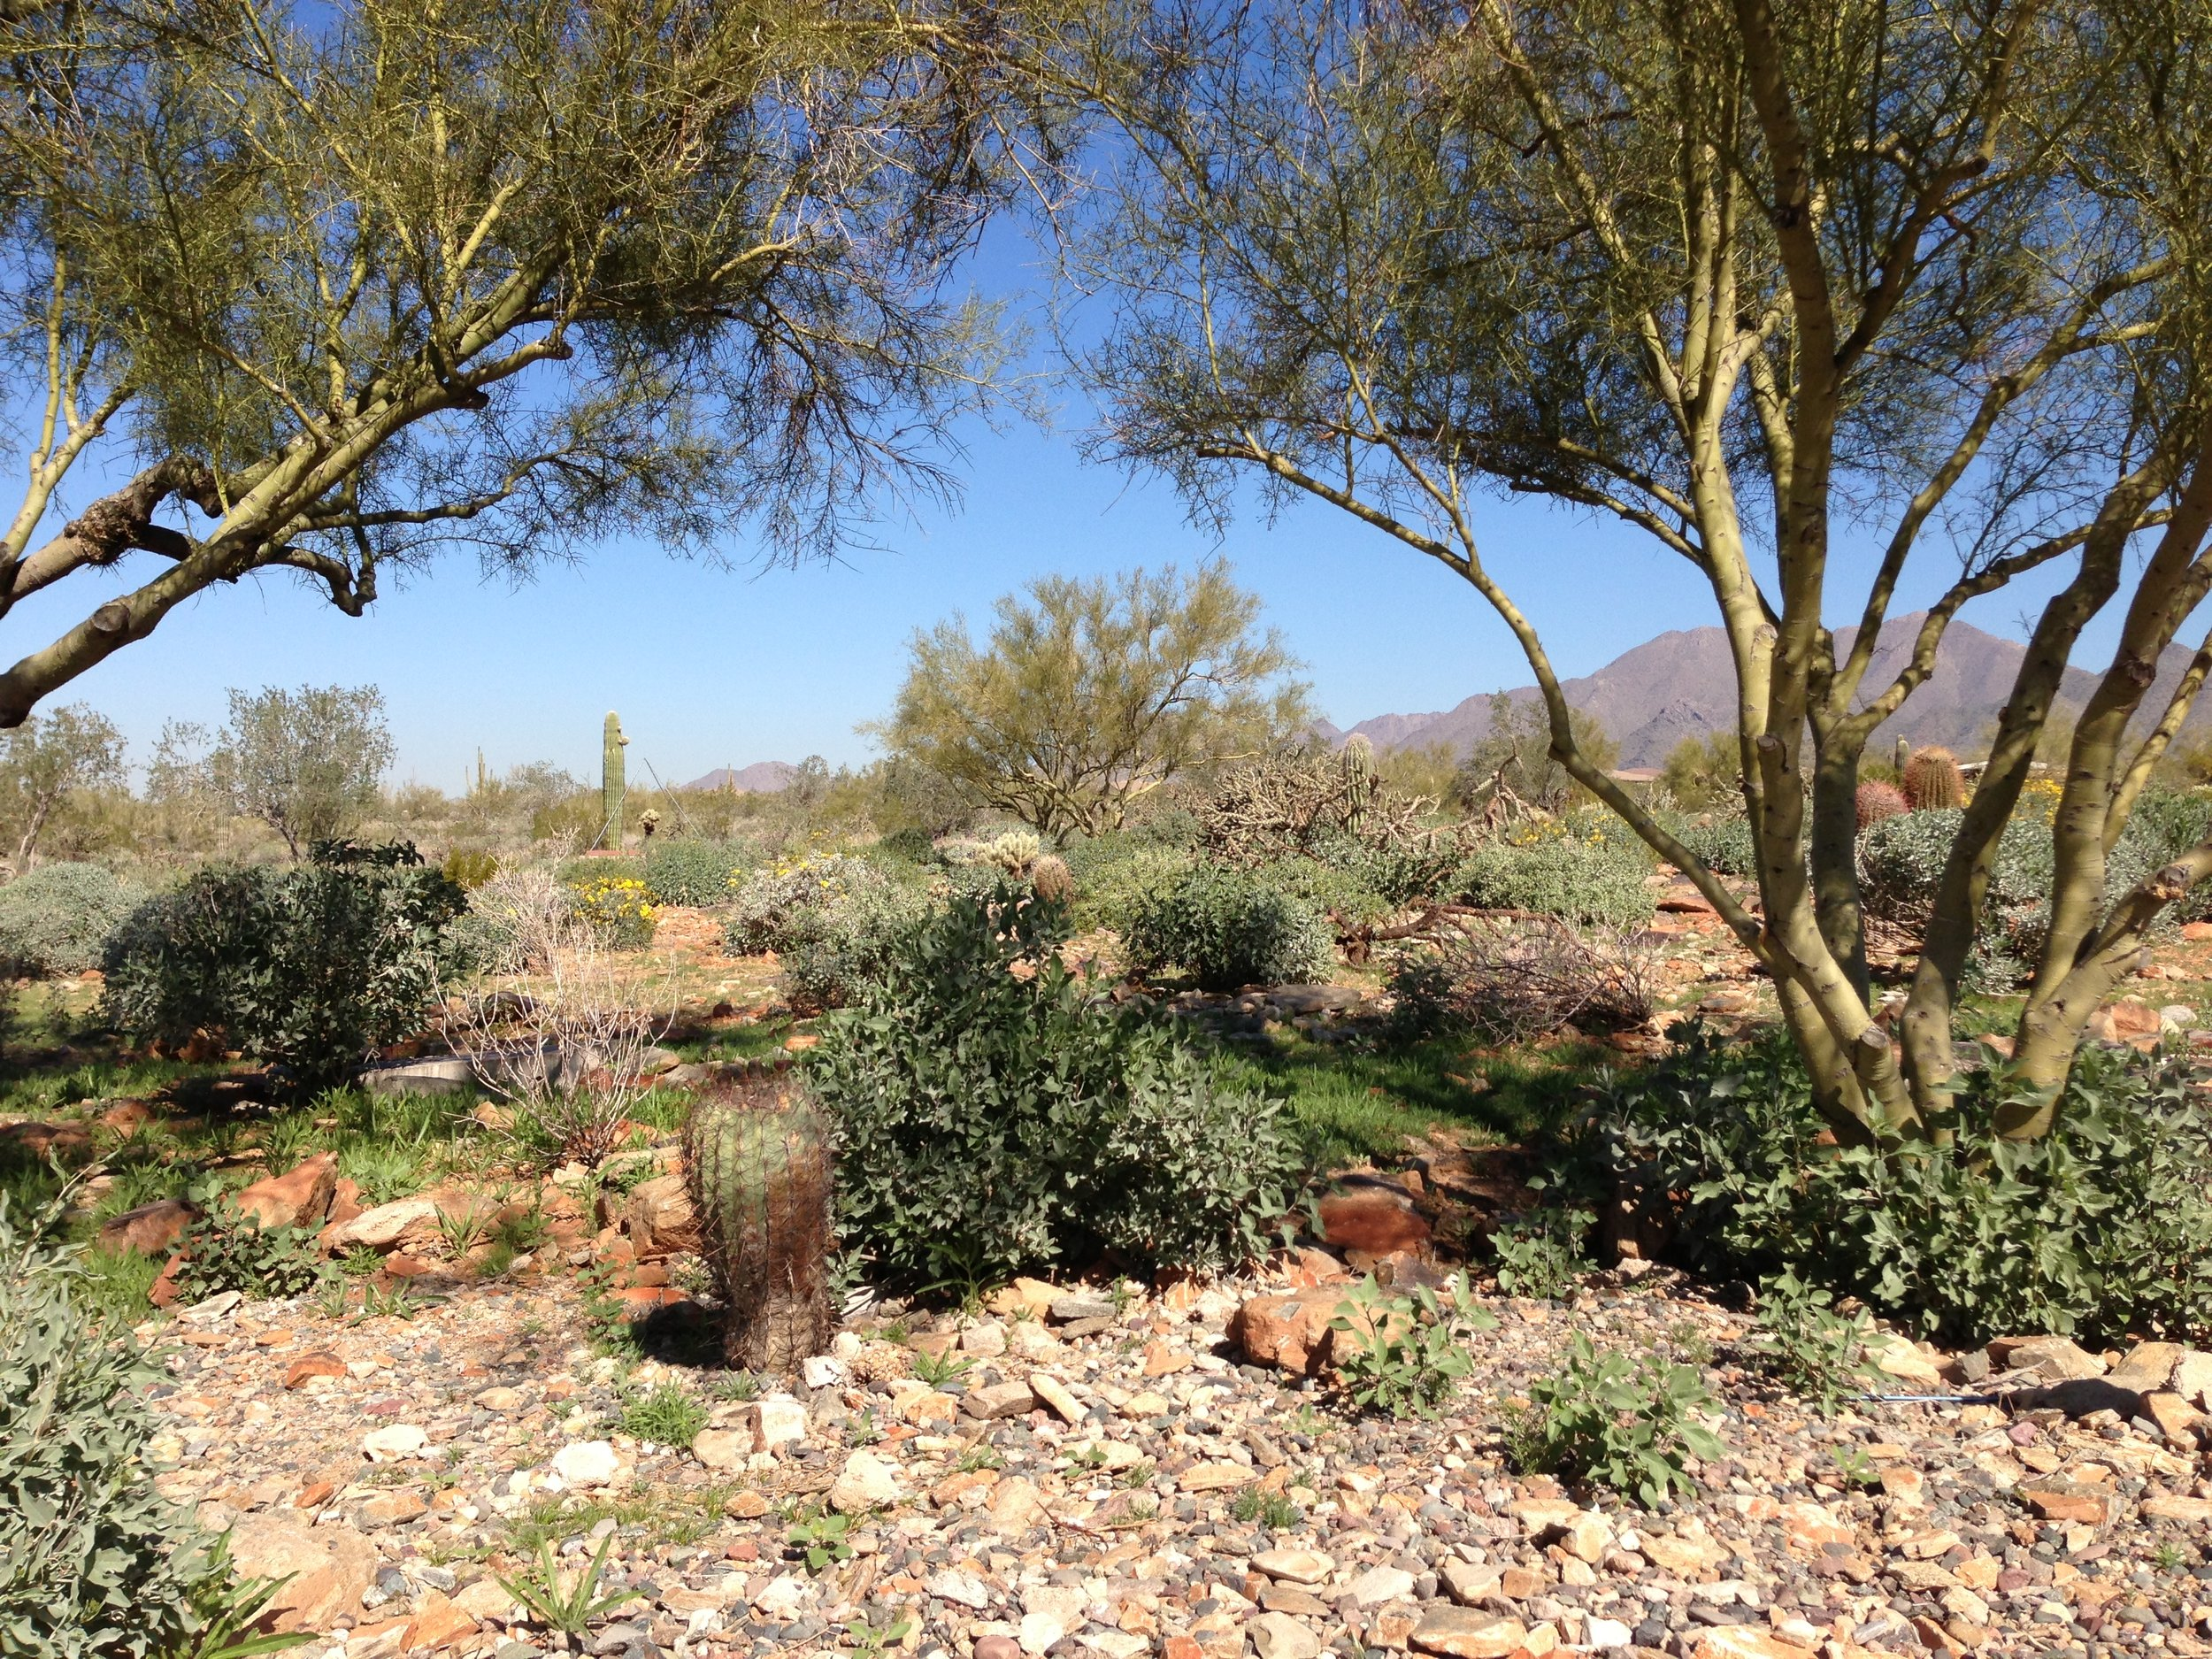 Cacti, mesquite and ironwood trees as far as the eye can see.